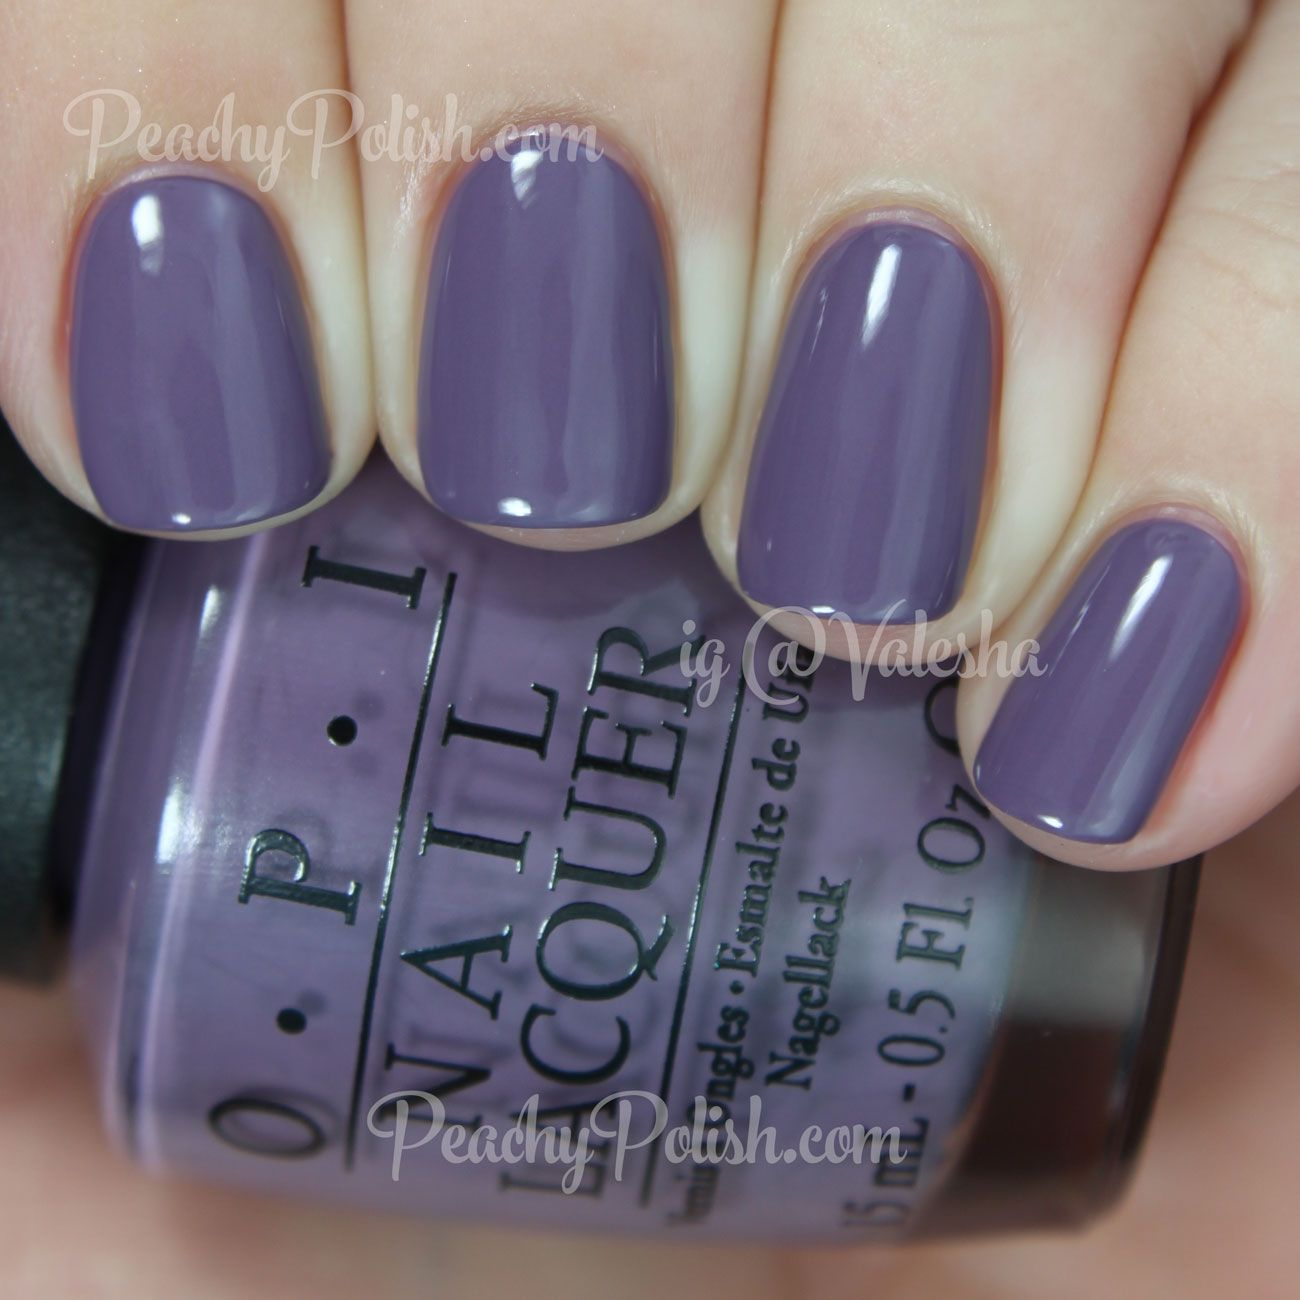 Opi spring 2015 hawaii collection swatches review peachy opi spring 2015 hawaii collection swatches review peachy polish sciox Gallery